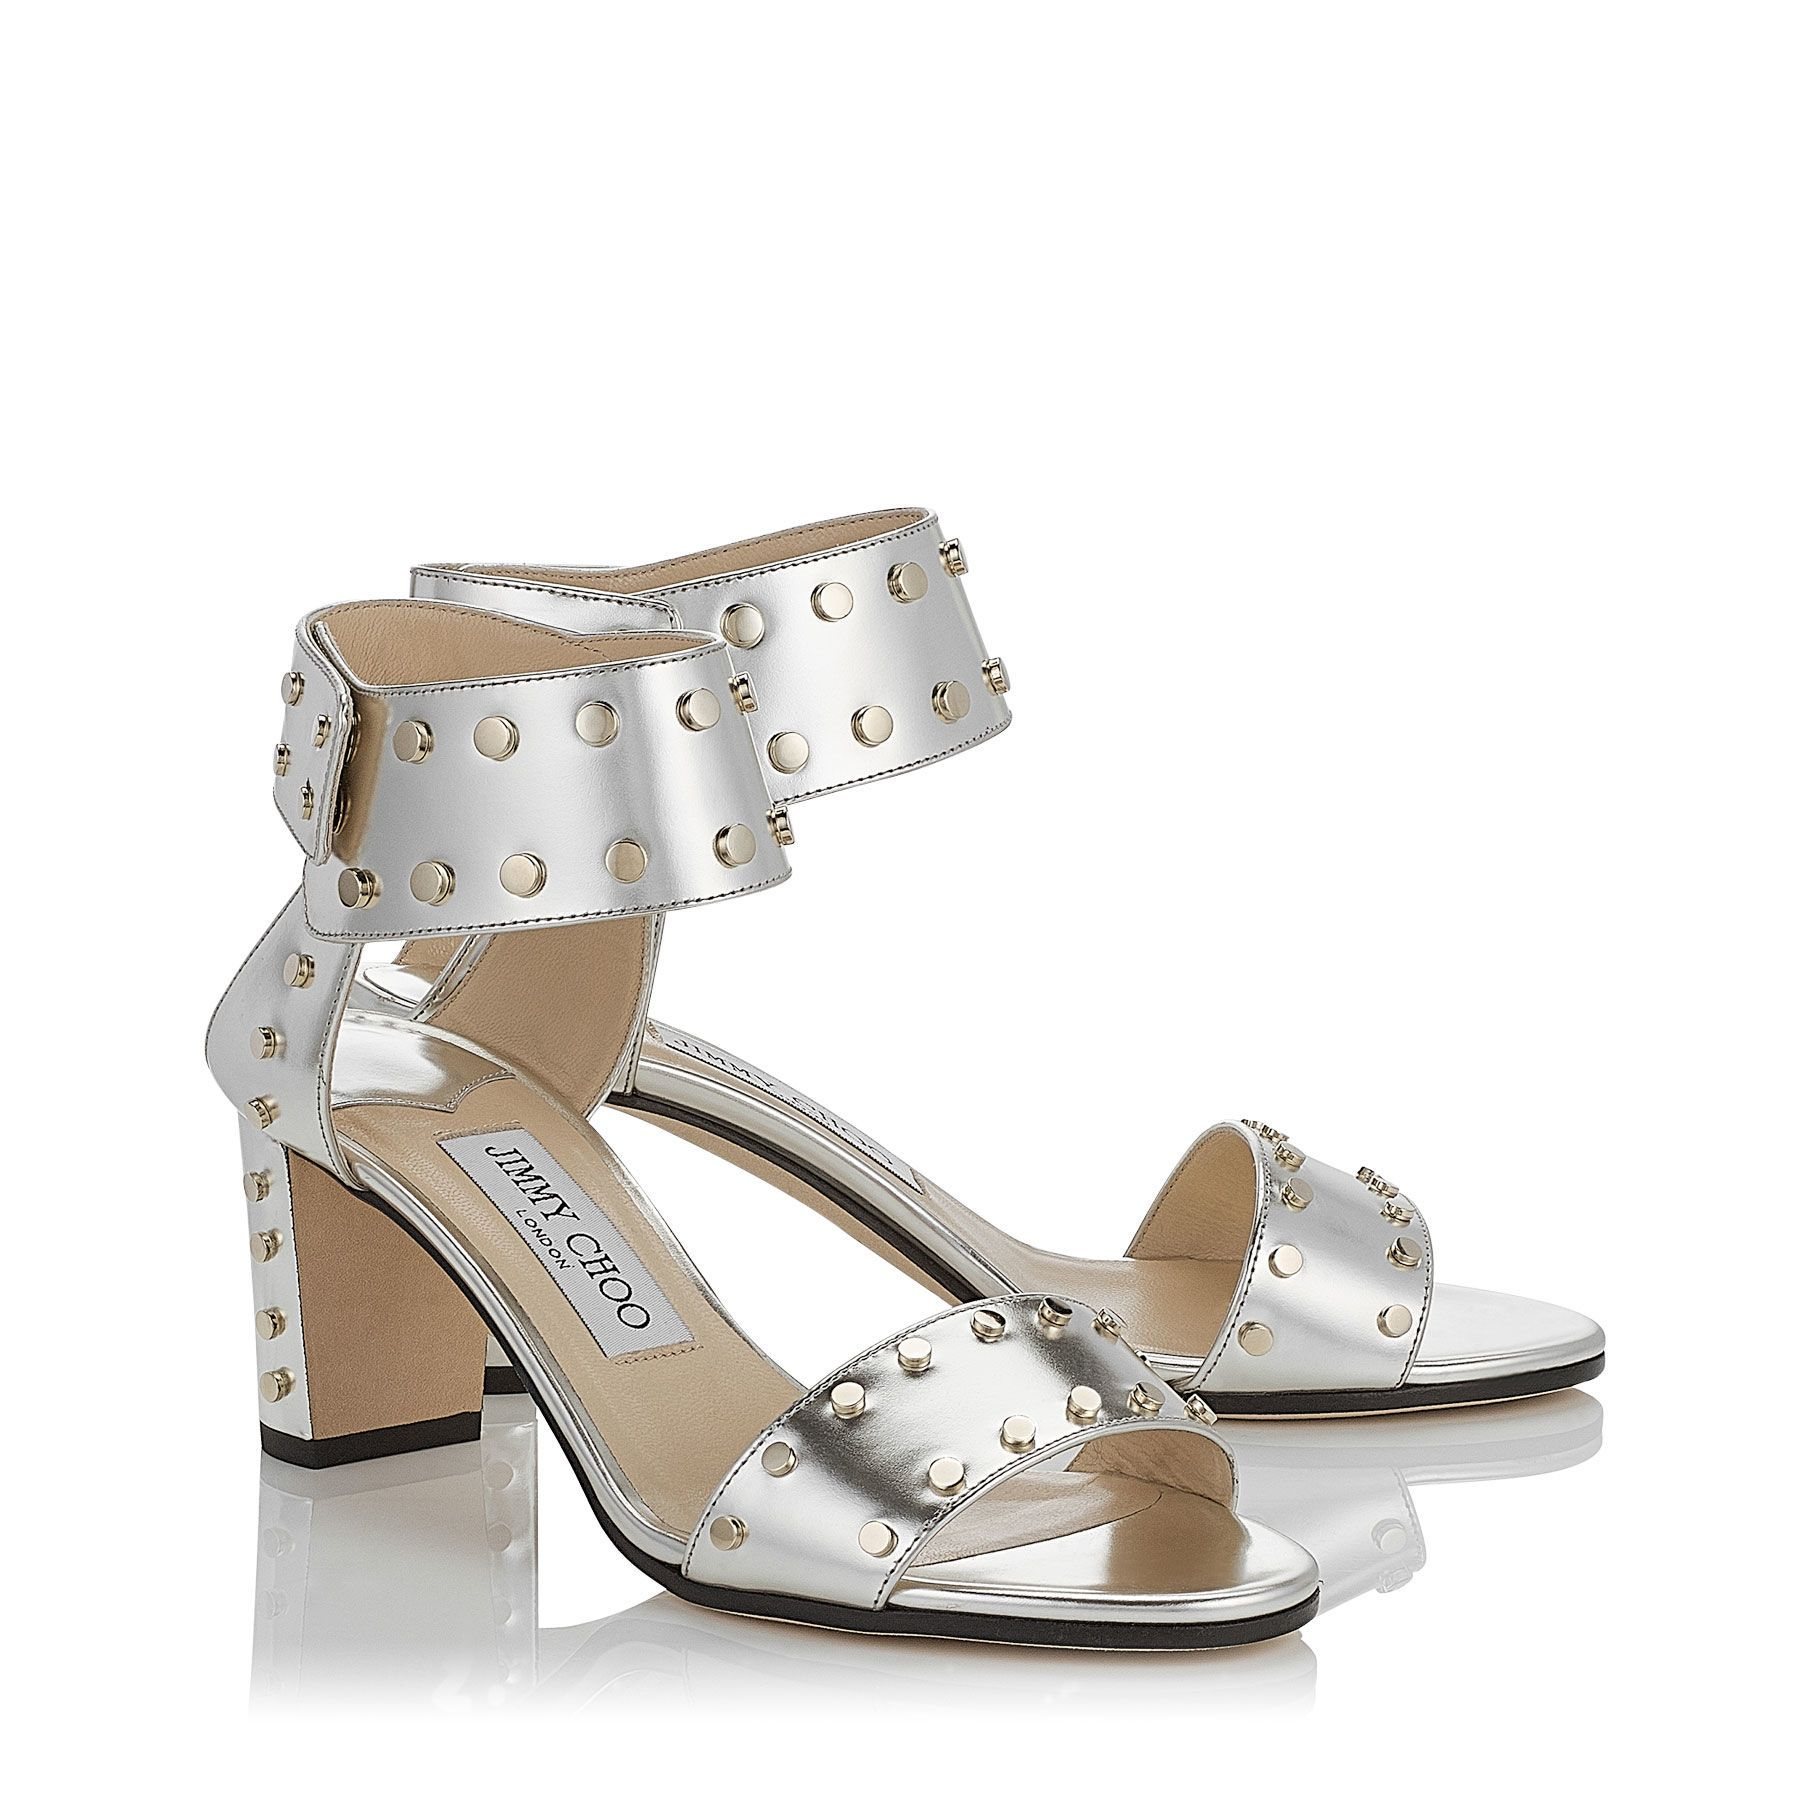 Veto 65 Sandals in Silver Mirror Leather with Gold Studs. Discover our Pre  Fall 16 Collection and shop the latest trends today.